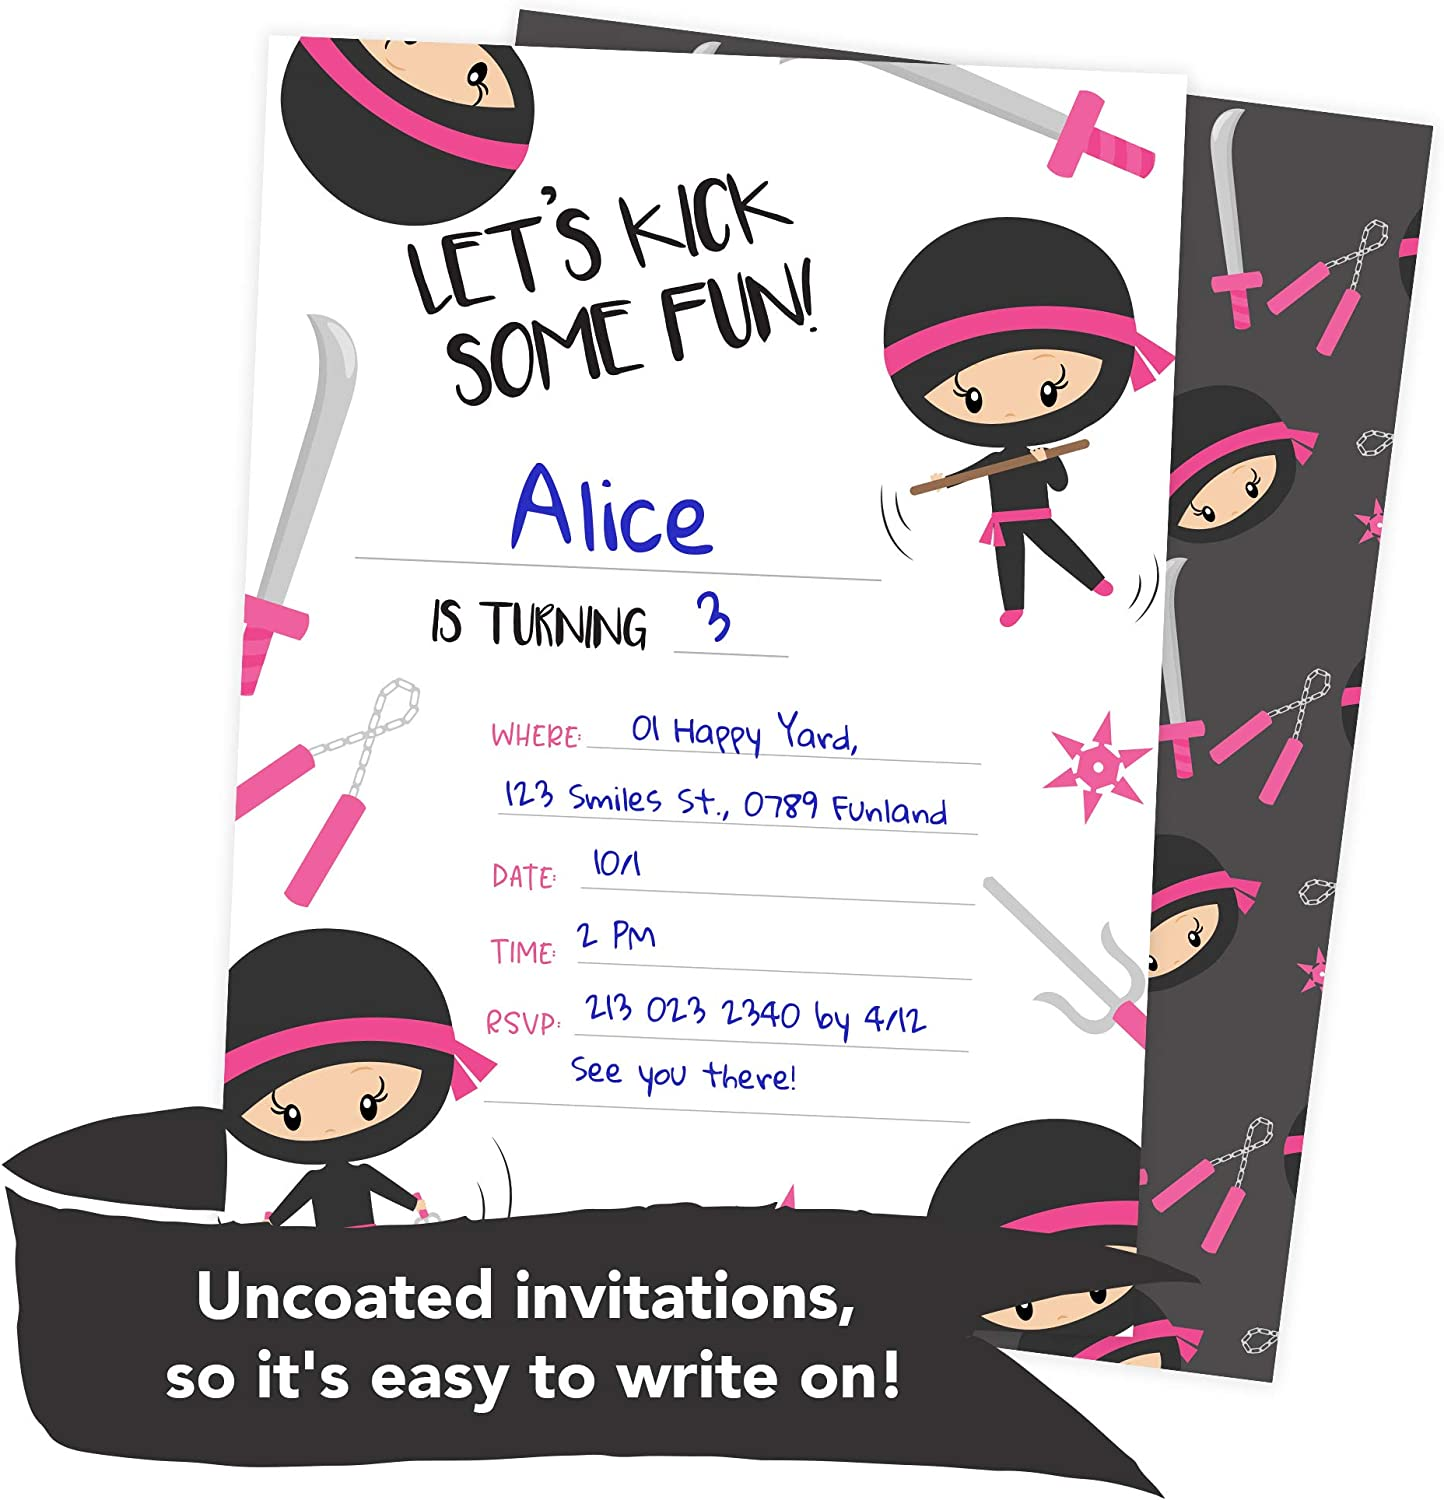 Pink Baby Girl Birthday Invitation Card Is Turning One With Flowers..  Royalty Free Cliparts, Vectors, And Stock Illustration. Image 128164723.